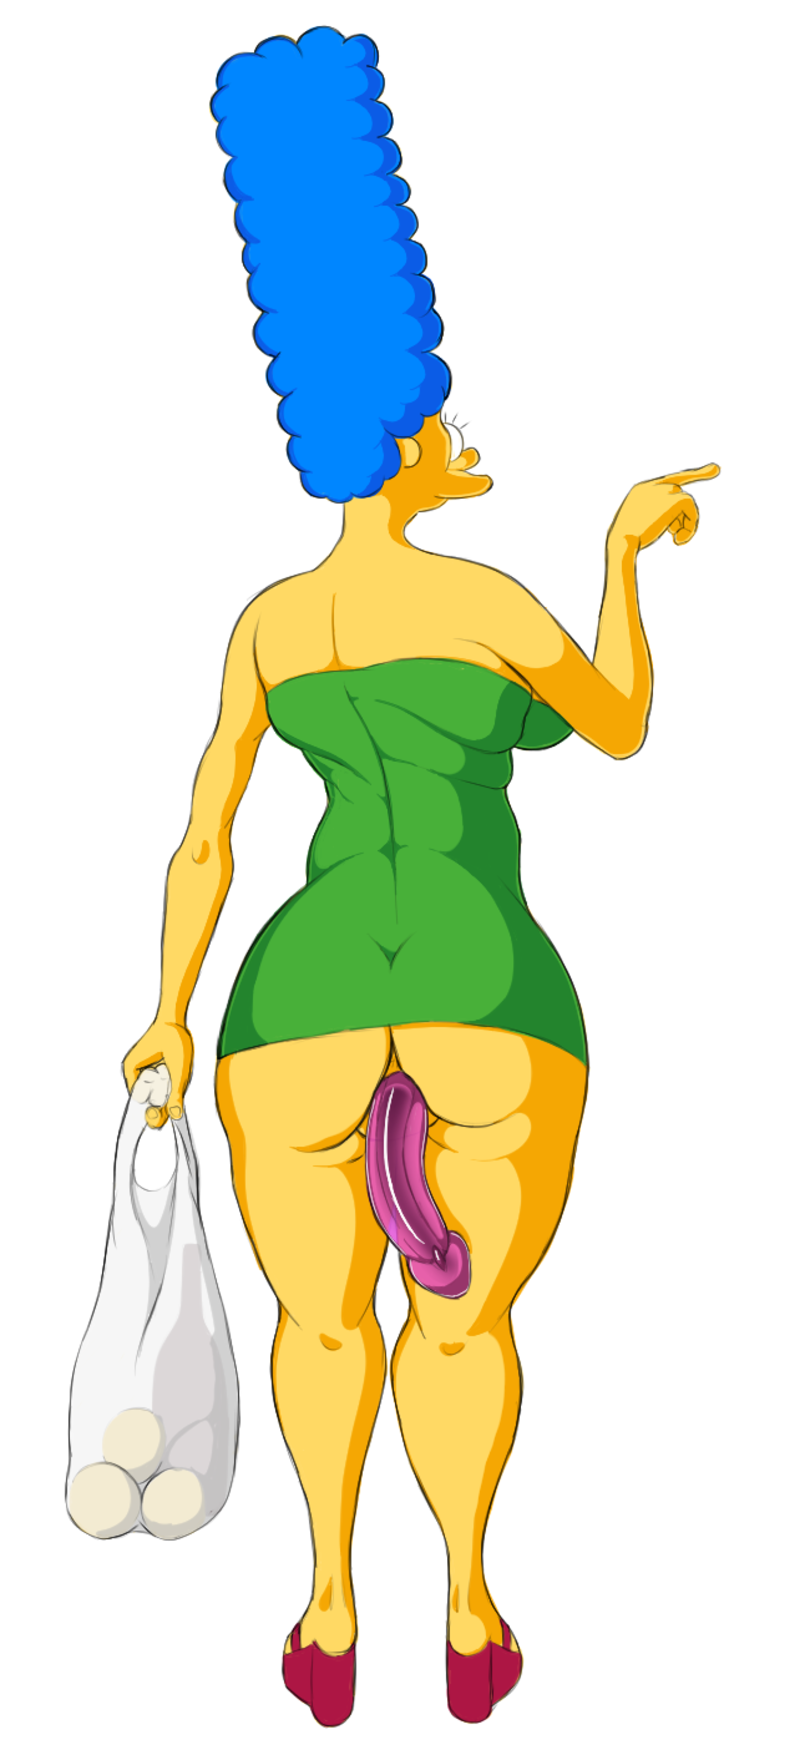 Marge Simpson share_it_66405faa2cbabaf44c68d92b258e2640